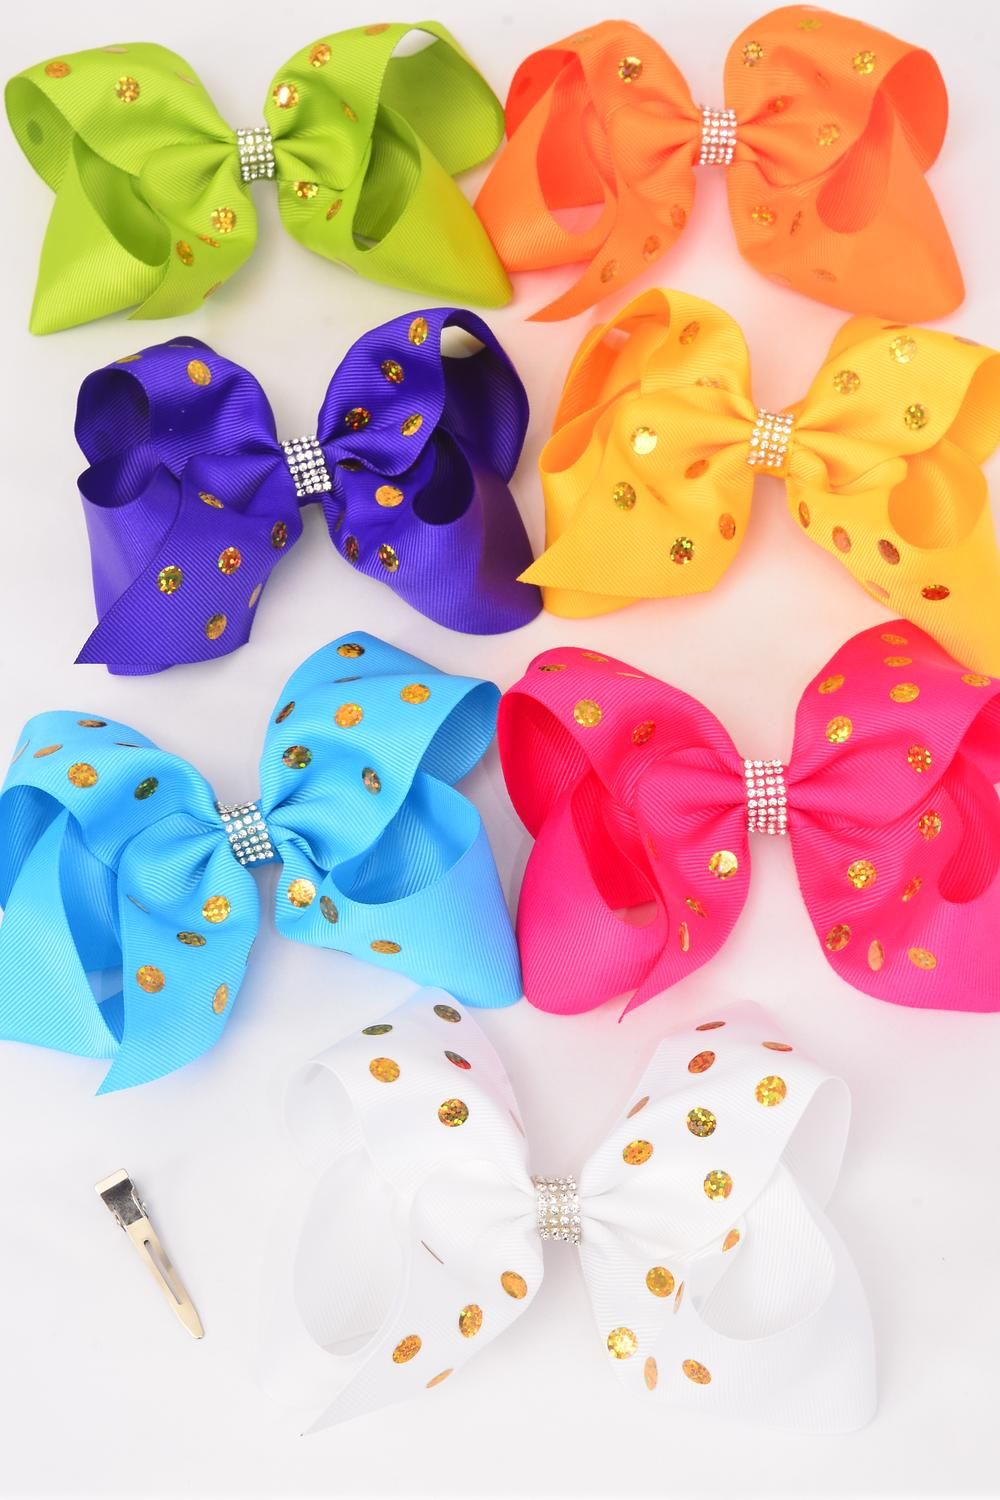 "Hair Bow Extra Jumbo Center Clear Stones Holographic Polkadots Citrus Grosgrain Bow-tie/DZ **Citrus** Alligator Clip,Size-6"" x 5"" Wide,2 White,2 Fuchsia,2 Purple,2 Blue,2 Yellow,1 Orange,1 Lime, 7 Color Mix,Clip Strip & UPC Code"